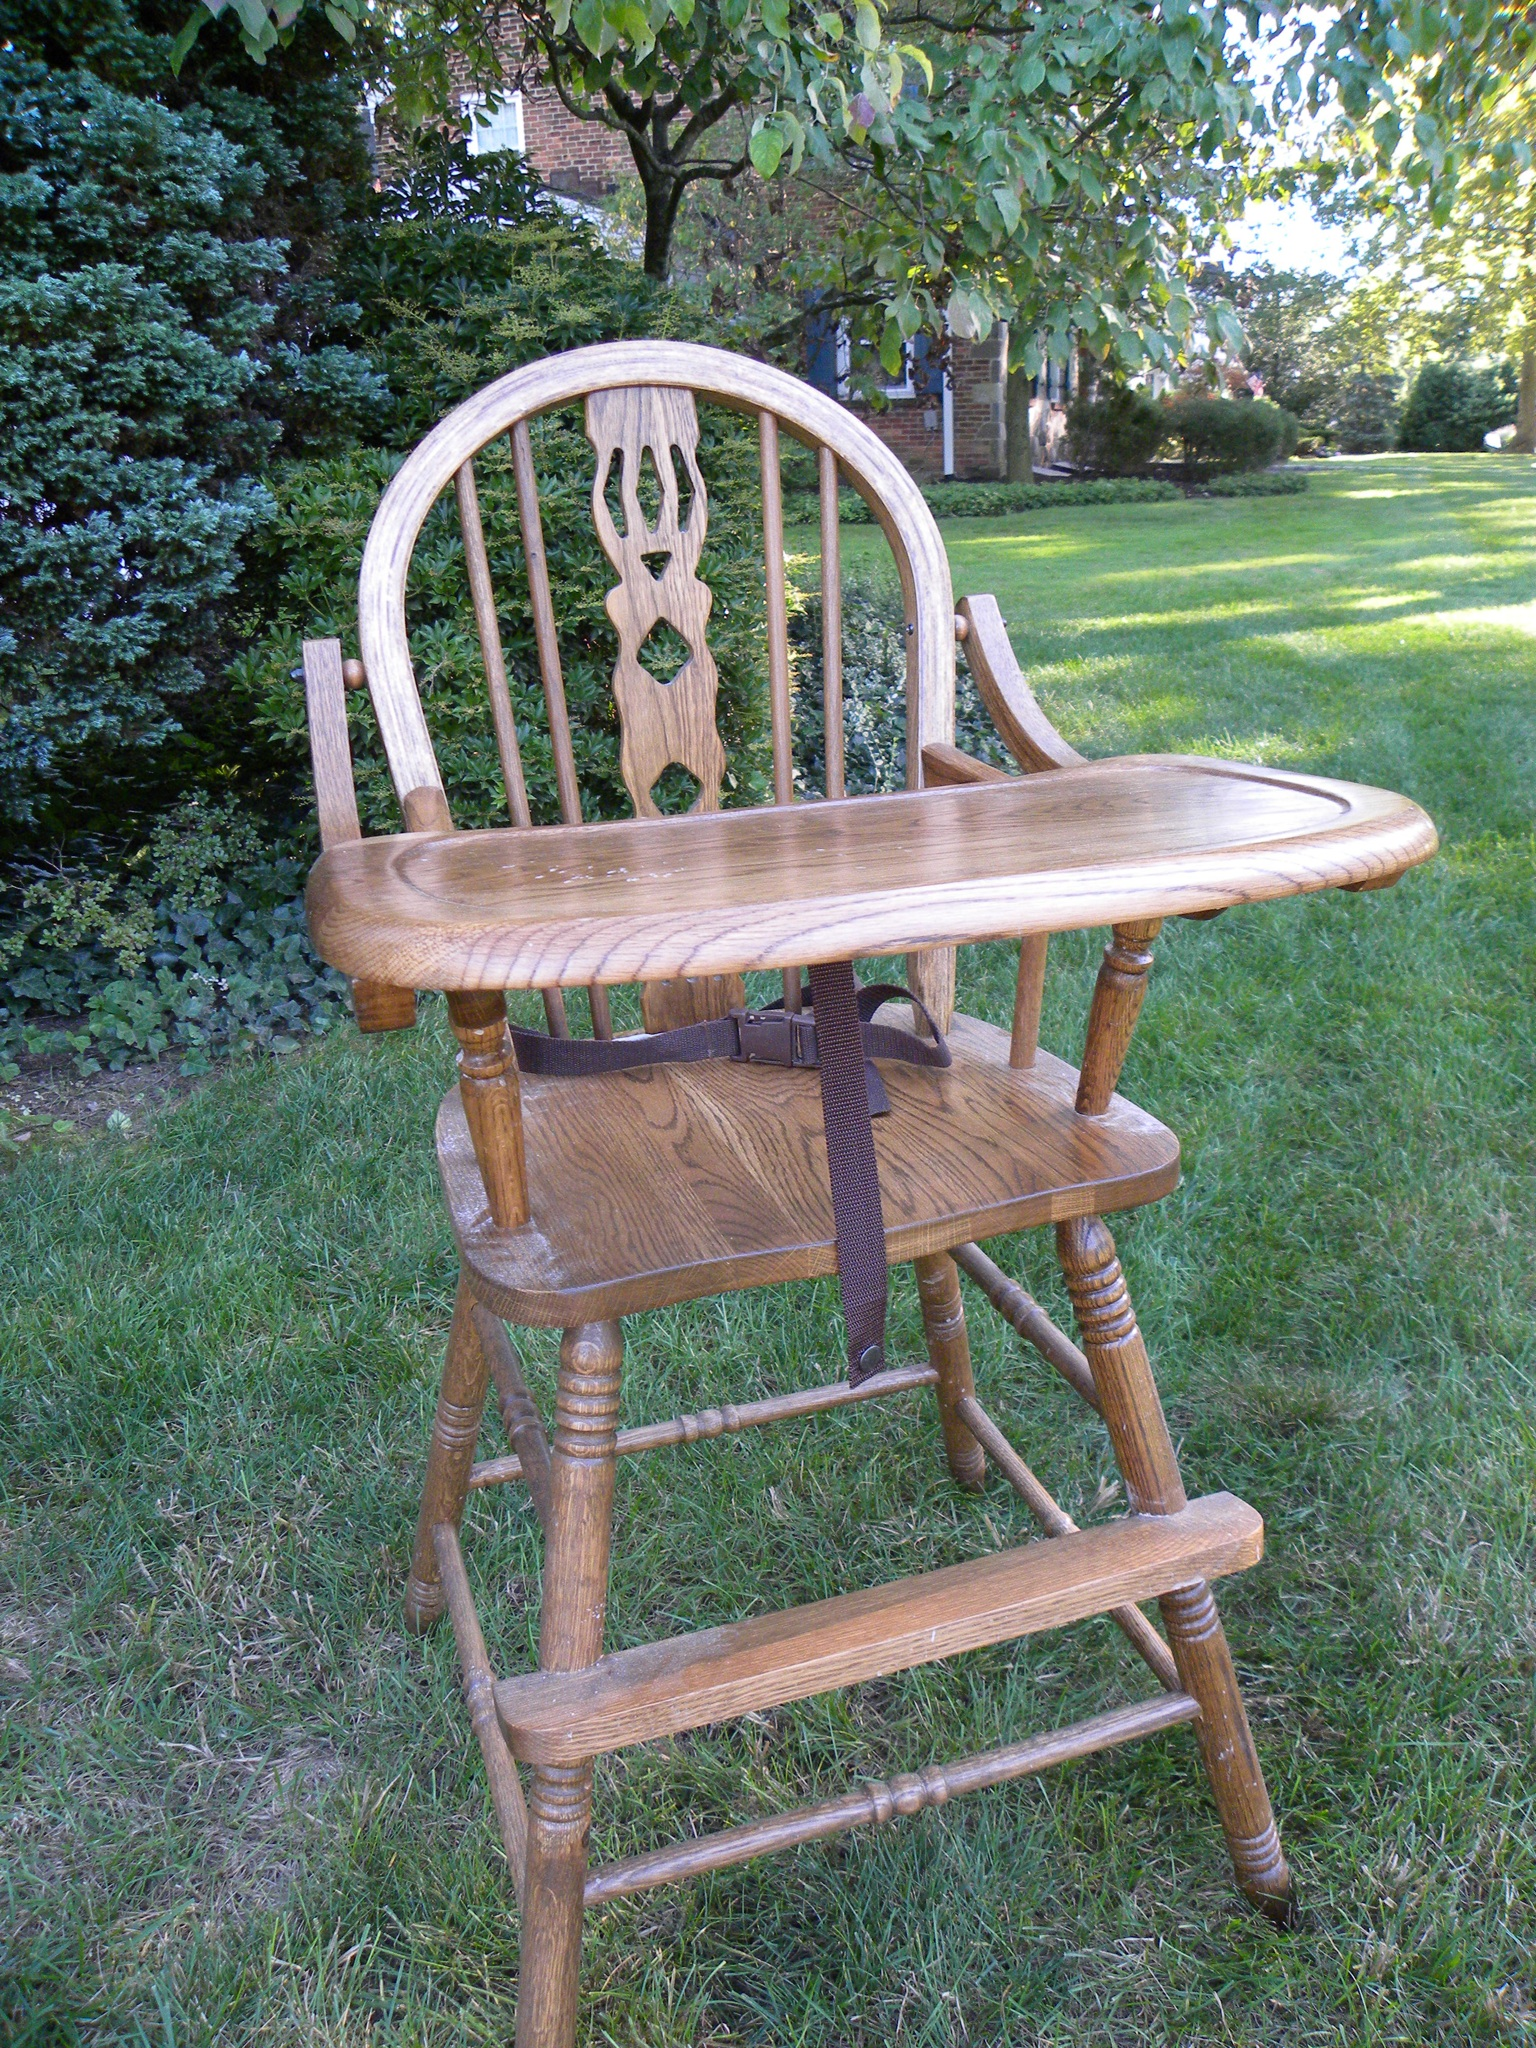 Vintage wooden high chair - Highchair1 Highchair2